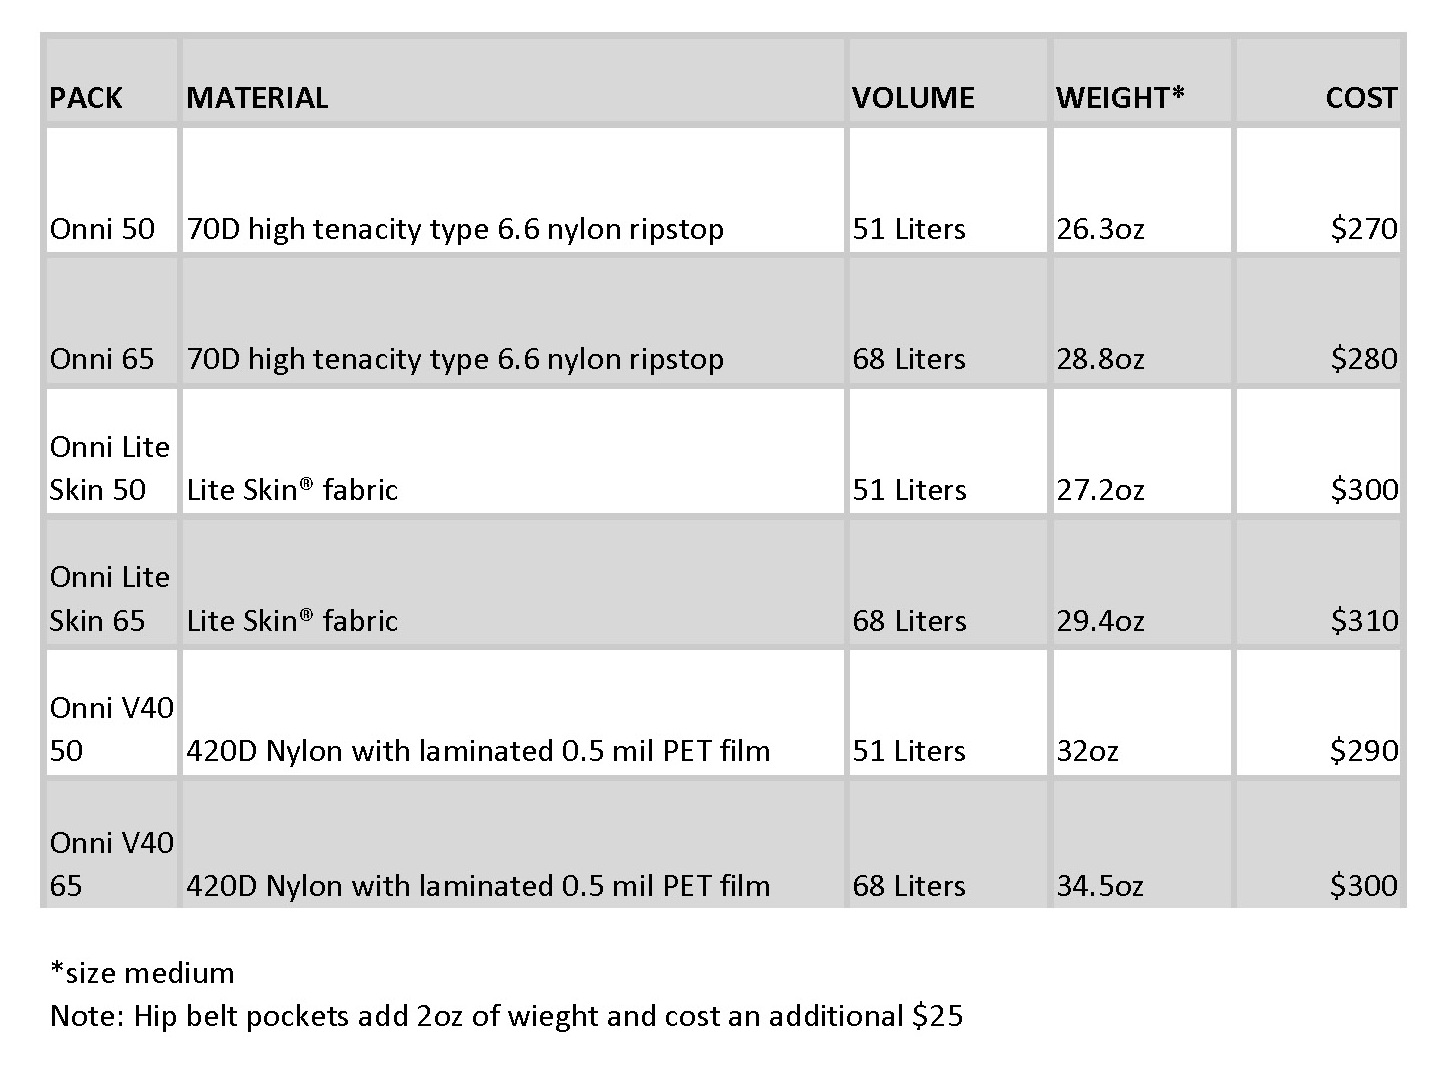 A summary table of the Katabatic Onni packs.